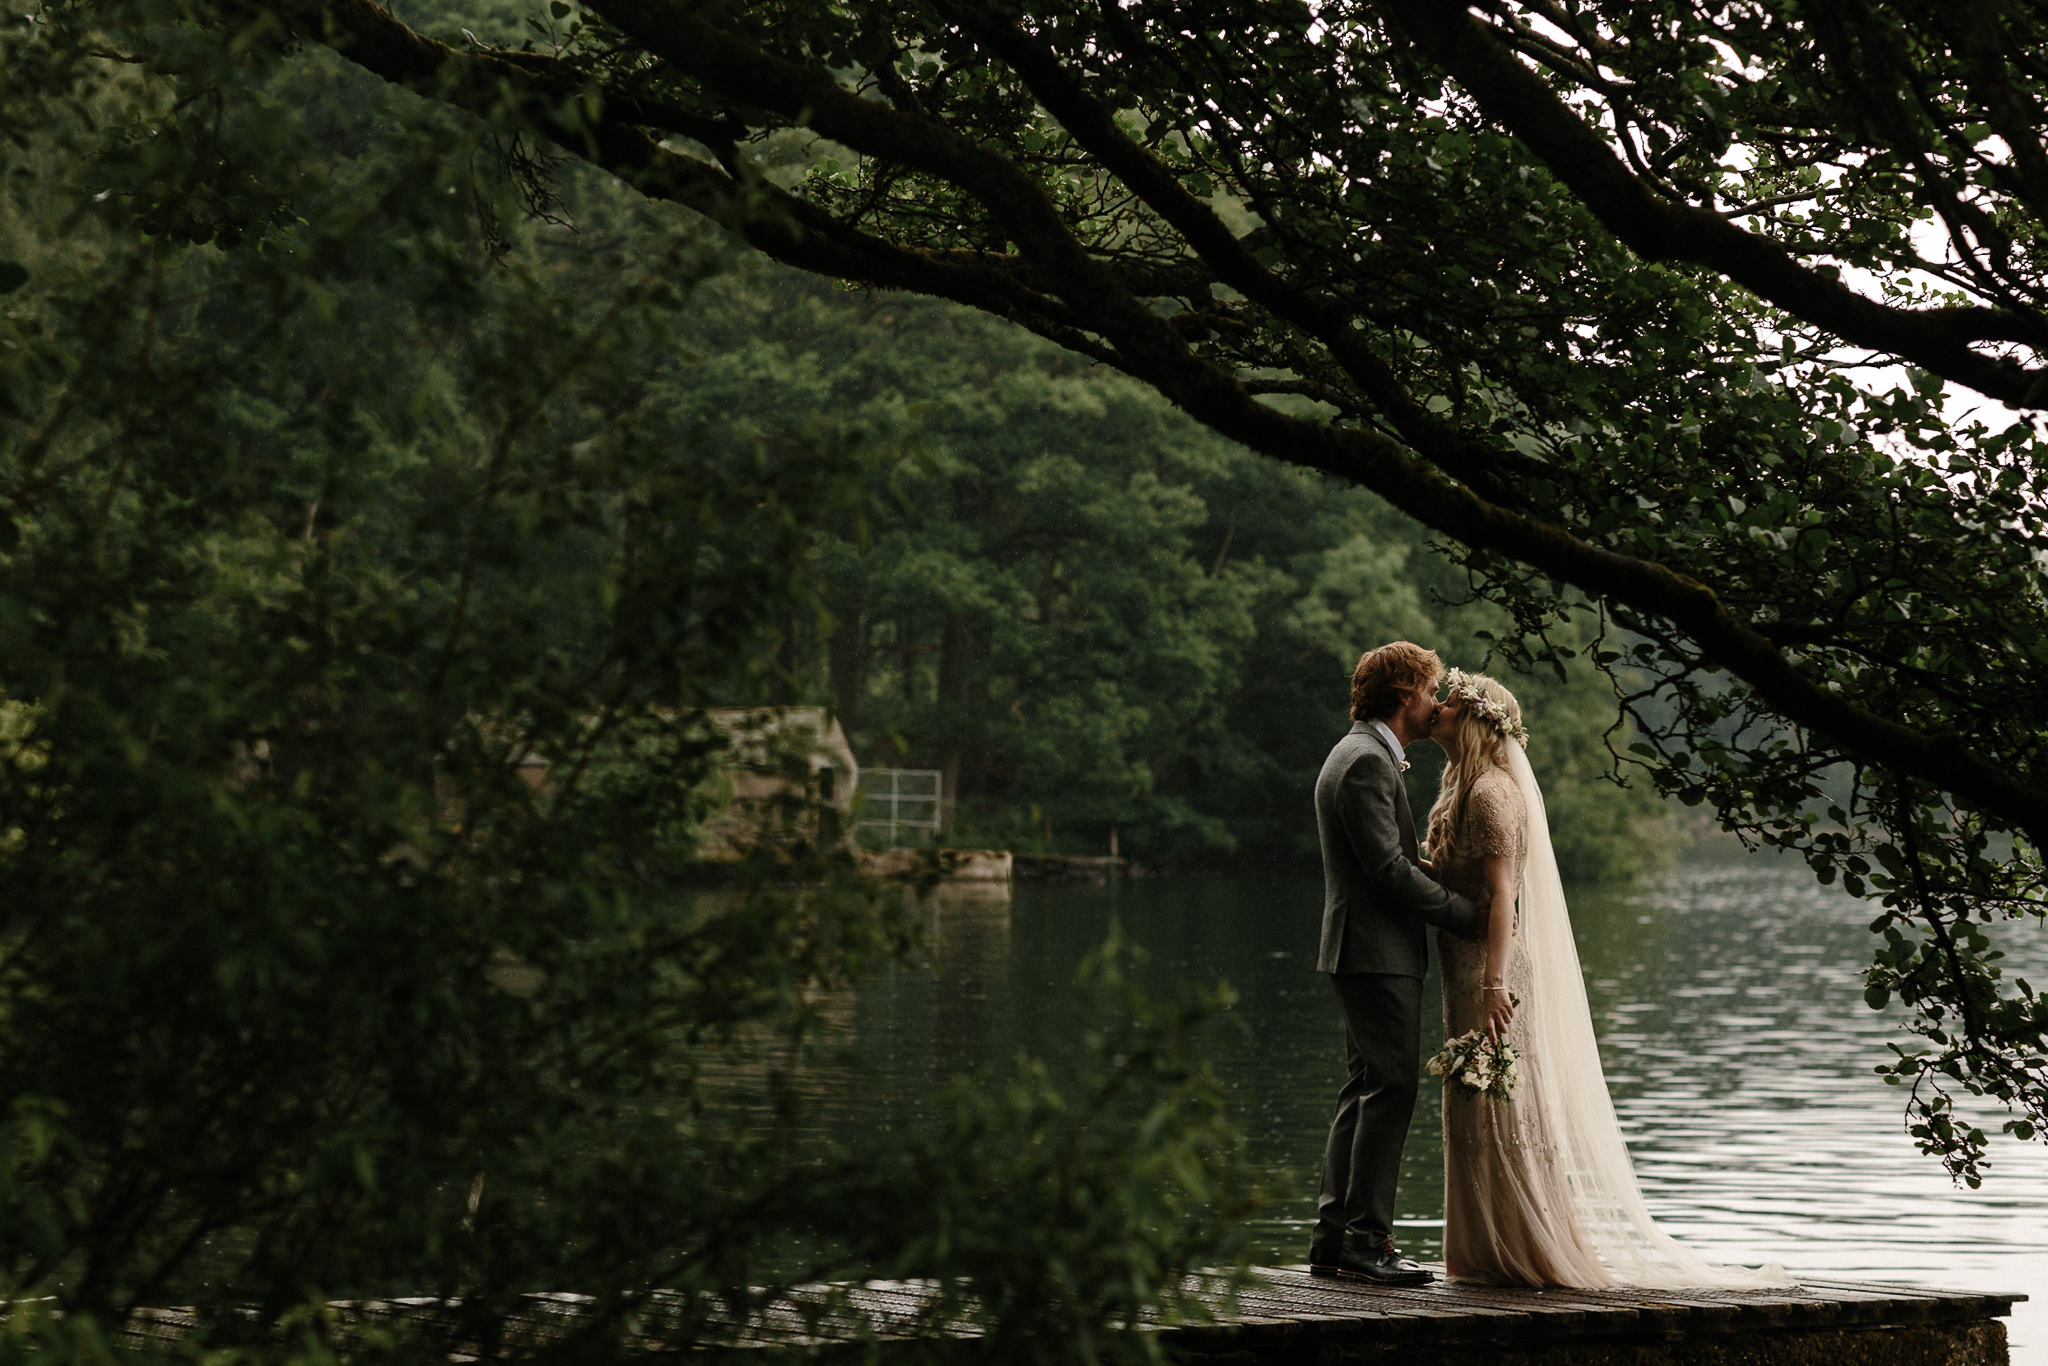 Romantic Wedding by the Lake